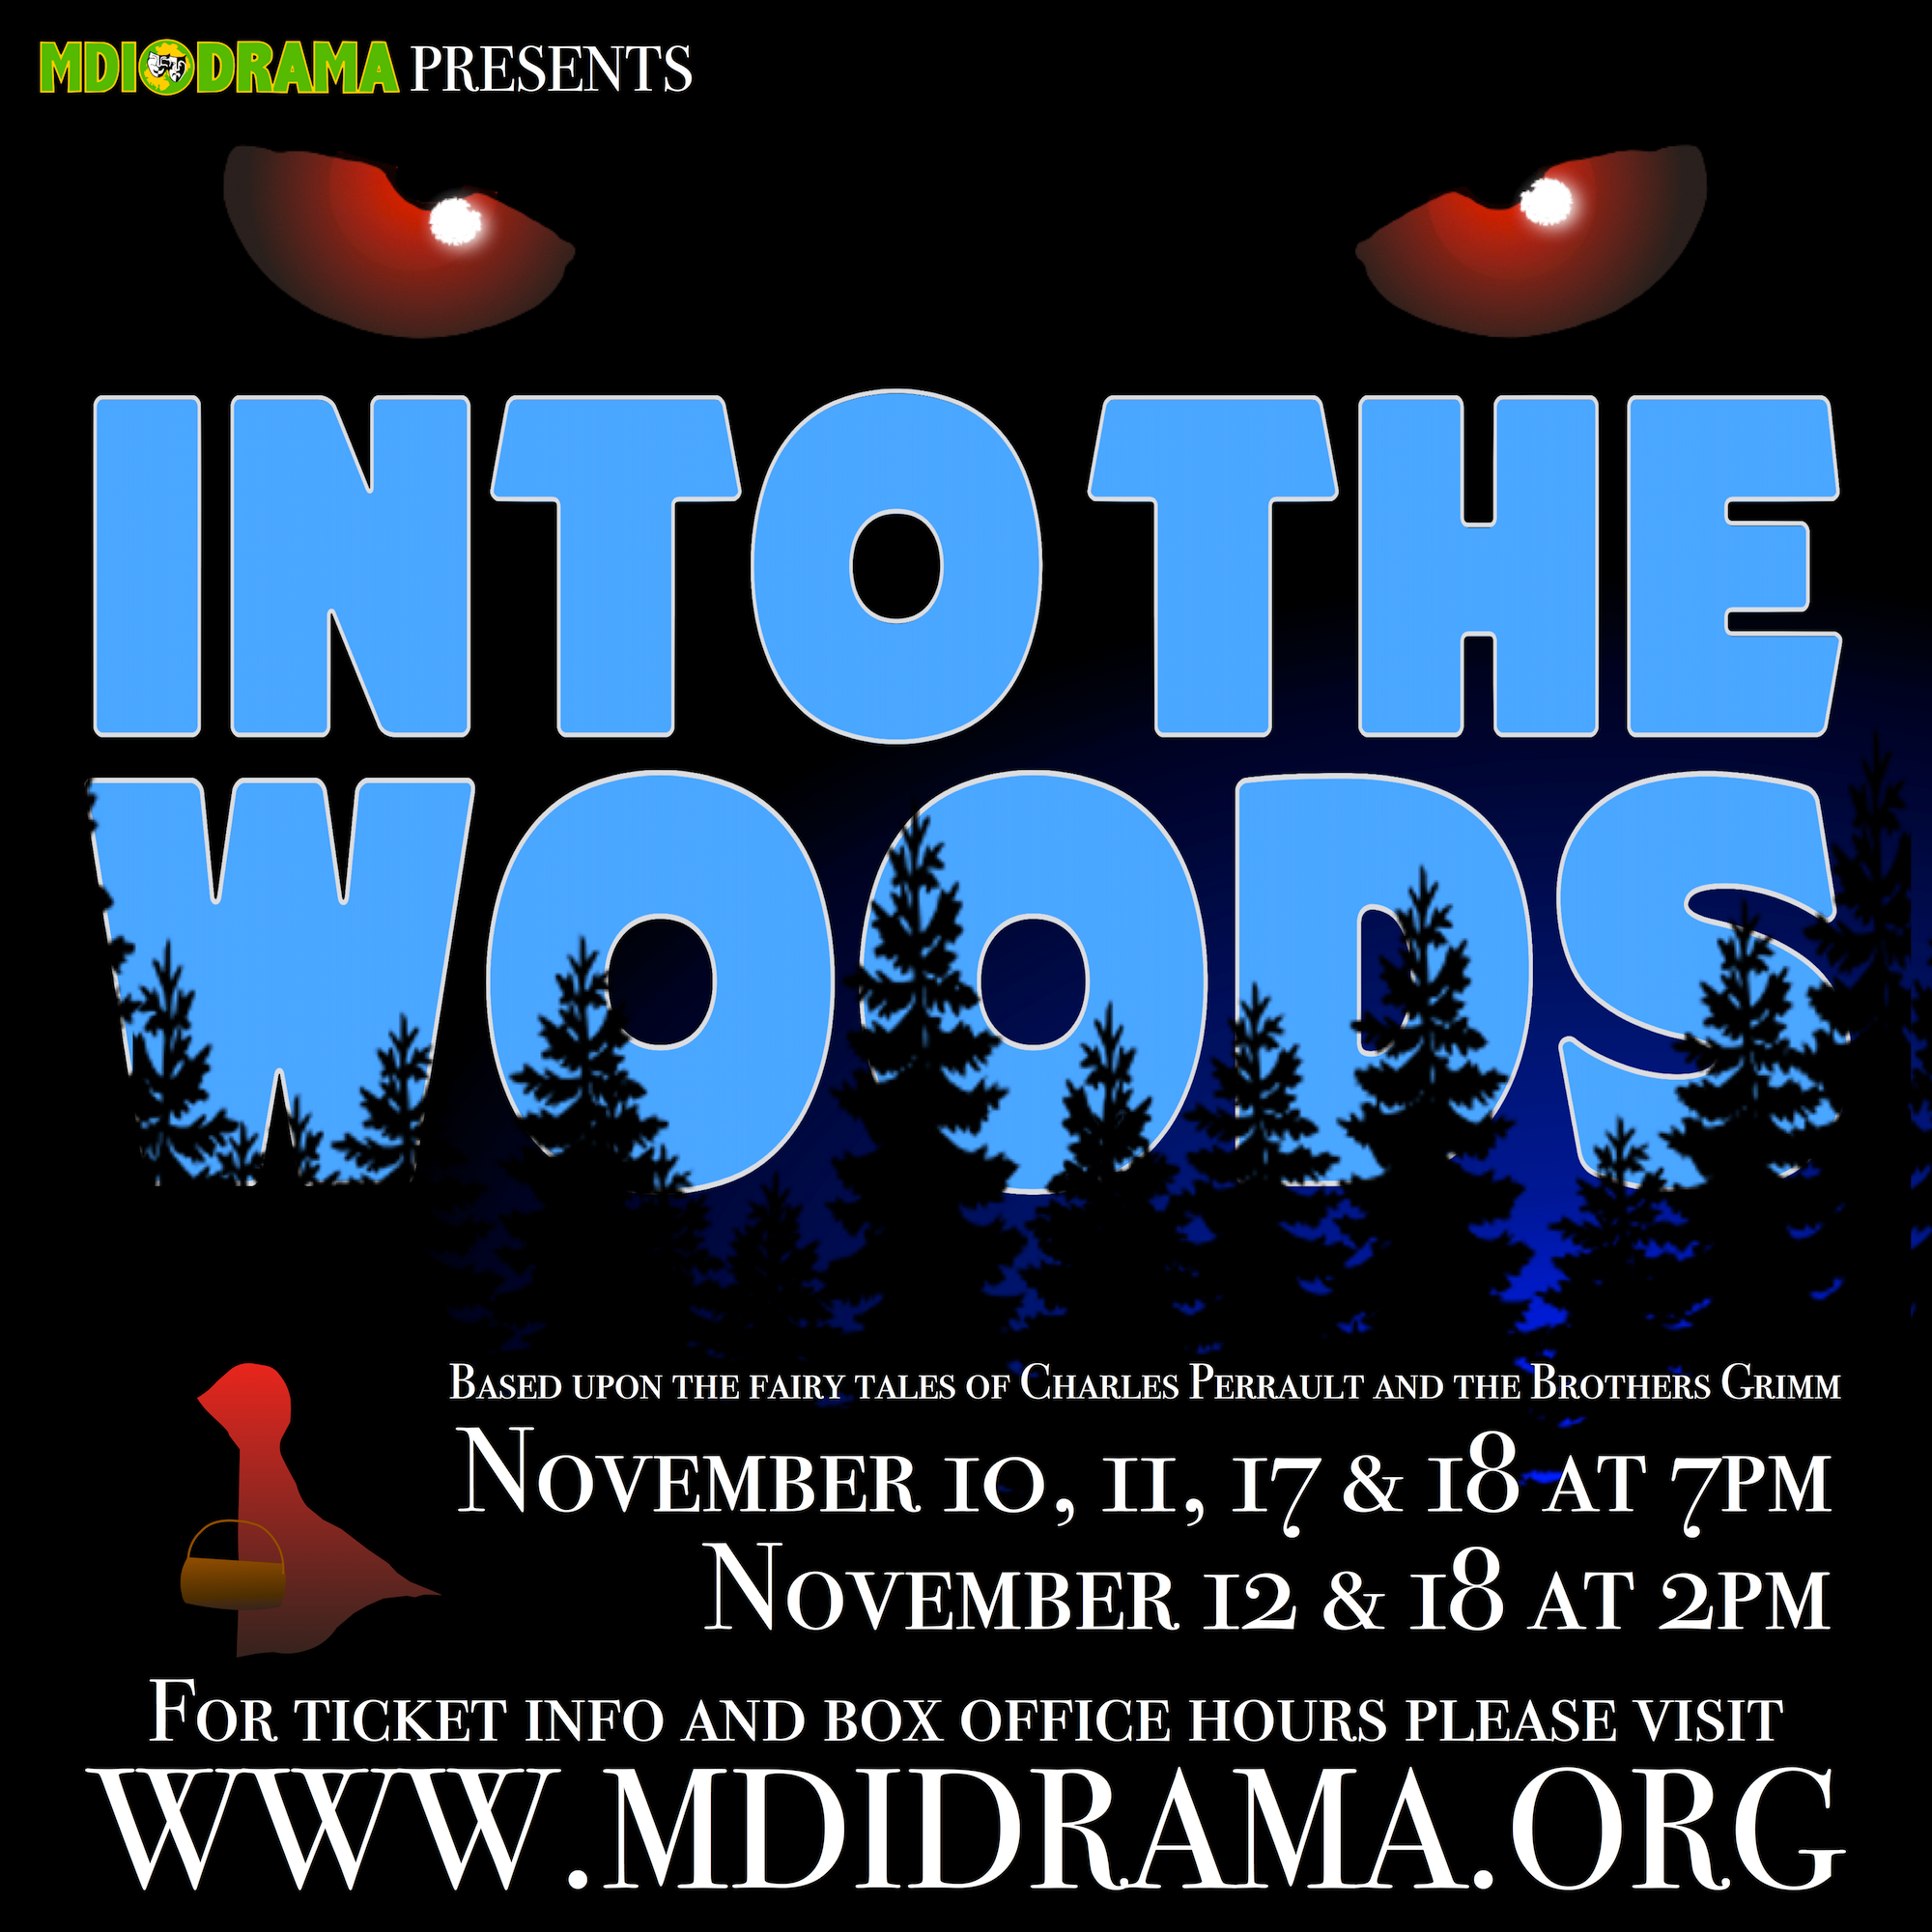 https://sites.google.com/a/mdirss.org/mdidrama-2-0/MDI-Drama-home/2017-fall-musical